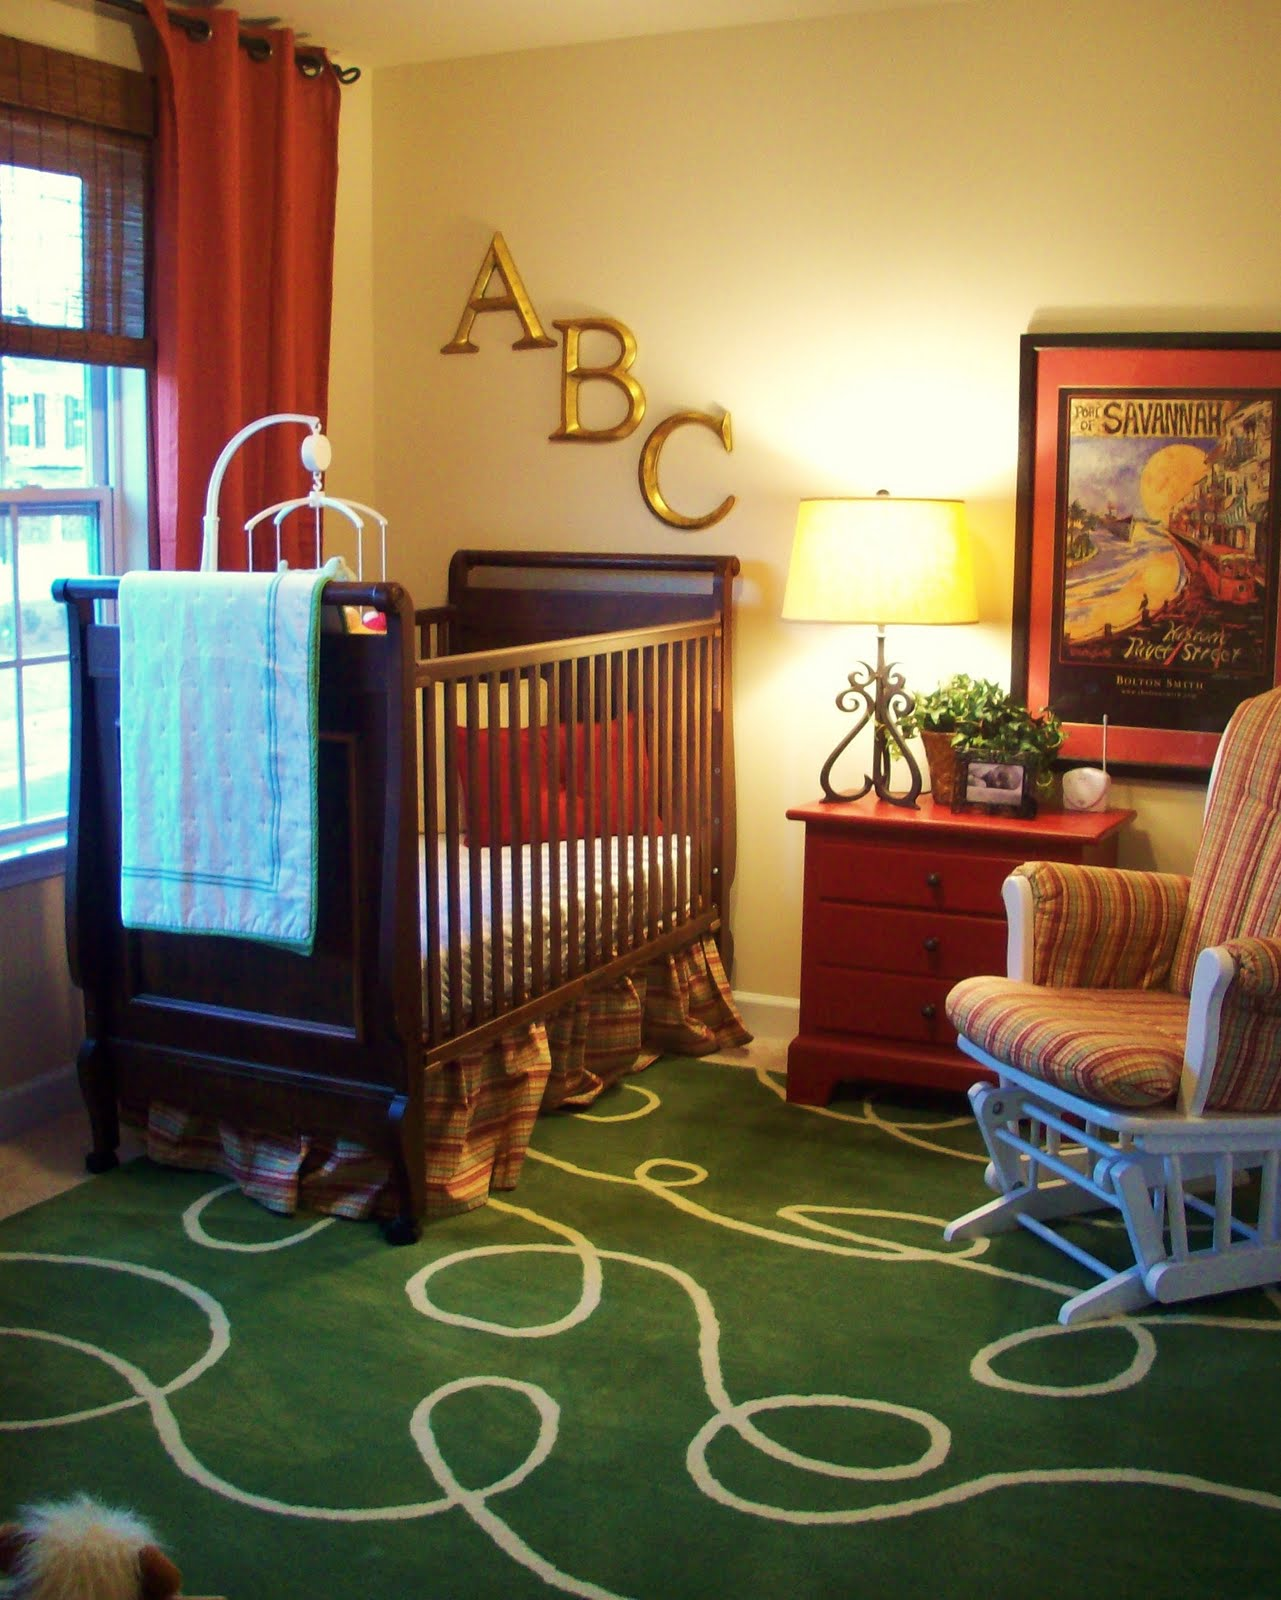 Unisex Kids Room Ideas: Cute Room For Baby